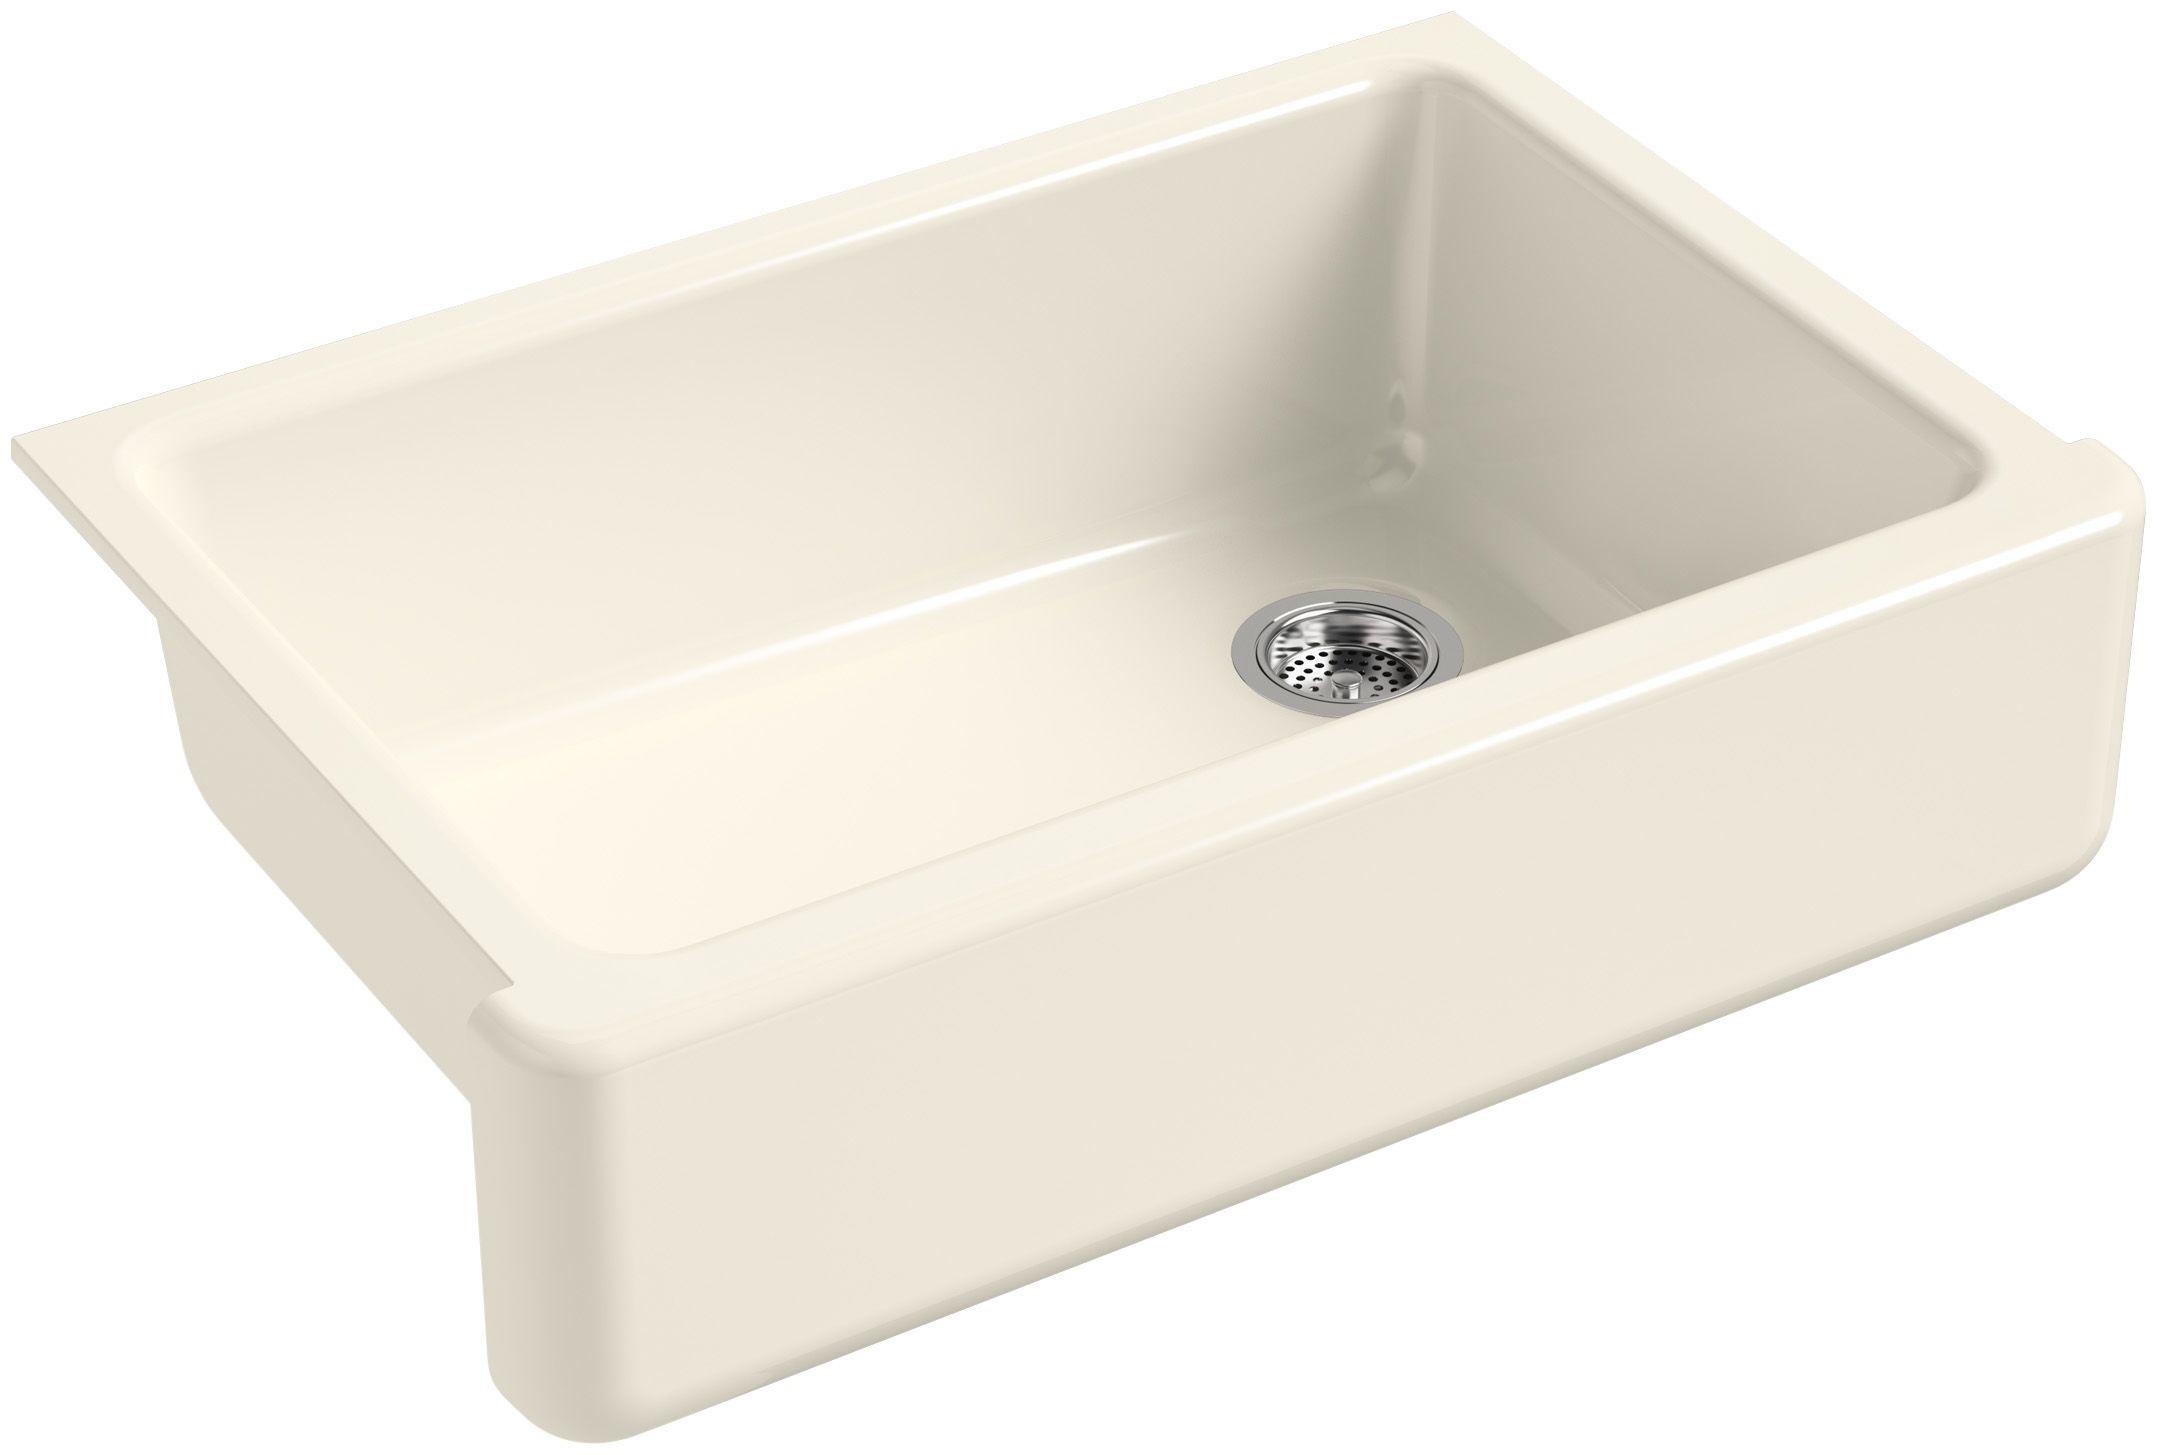 kohler kitchen sinks kohler kitchen sink undermount self rimming